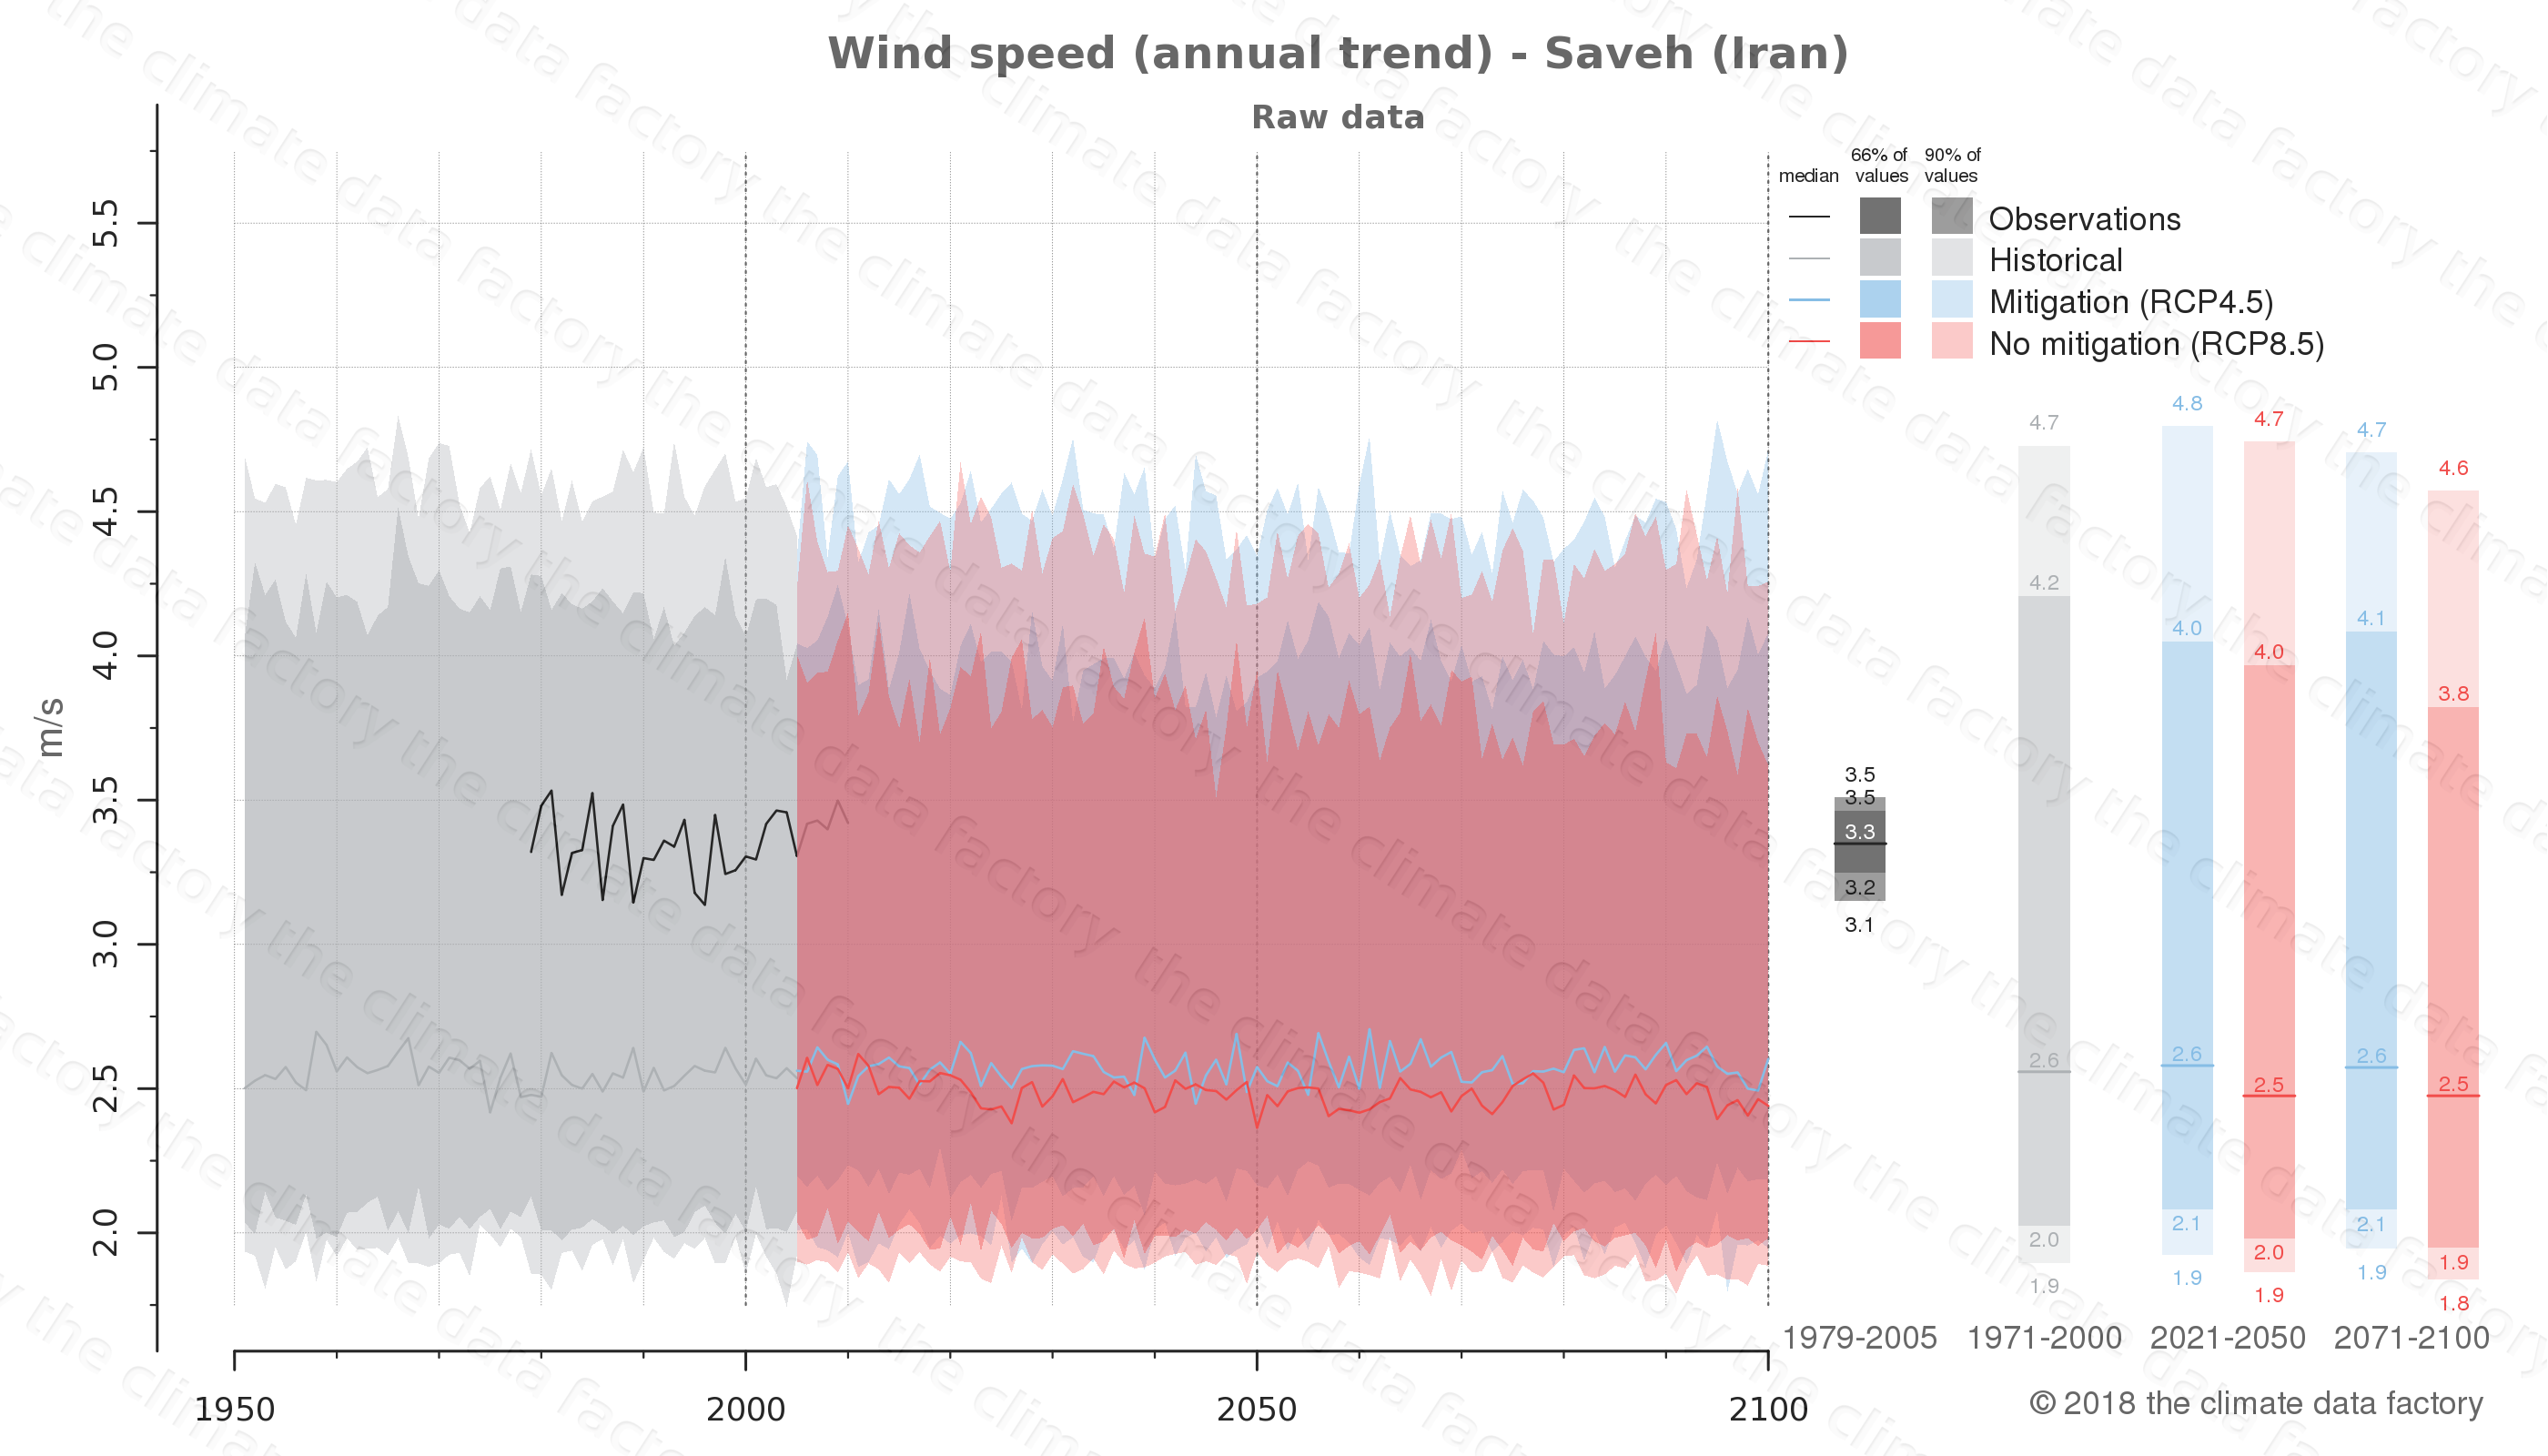 climate change data policy adaptation climate graph city data wind-speed saveh iran